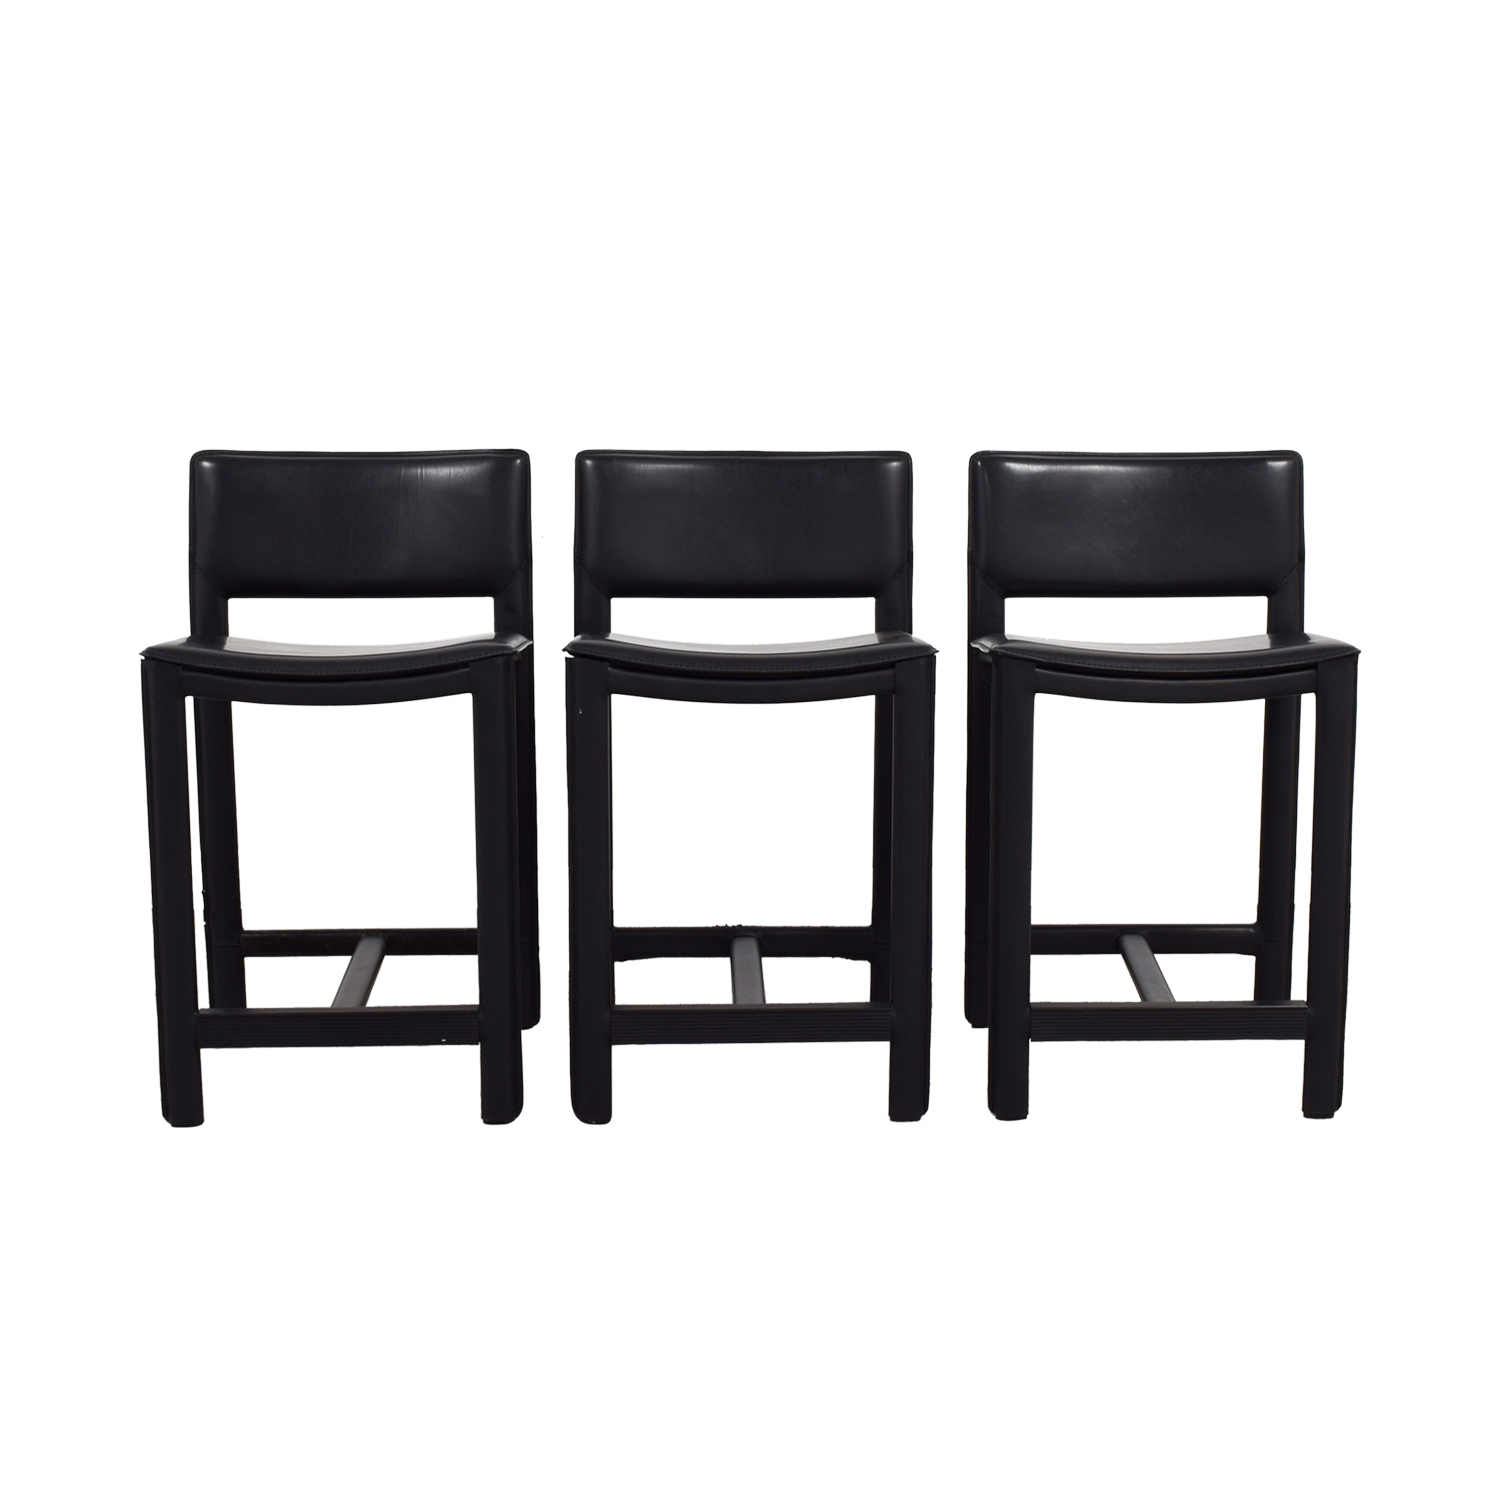 Room and Board Room and Board Sava Black Leather Bar Stools Stools